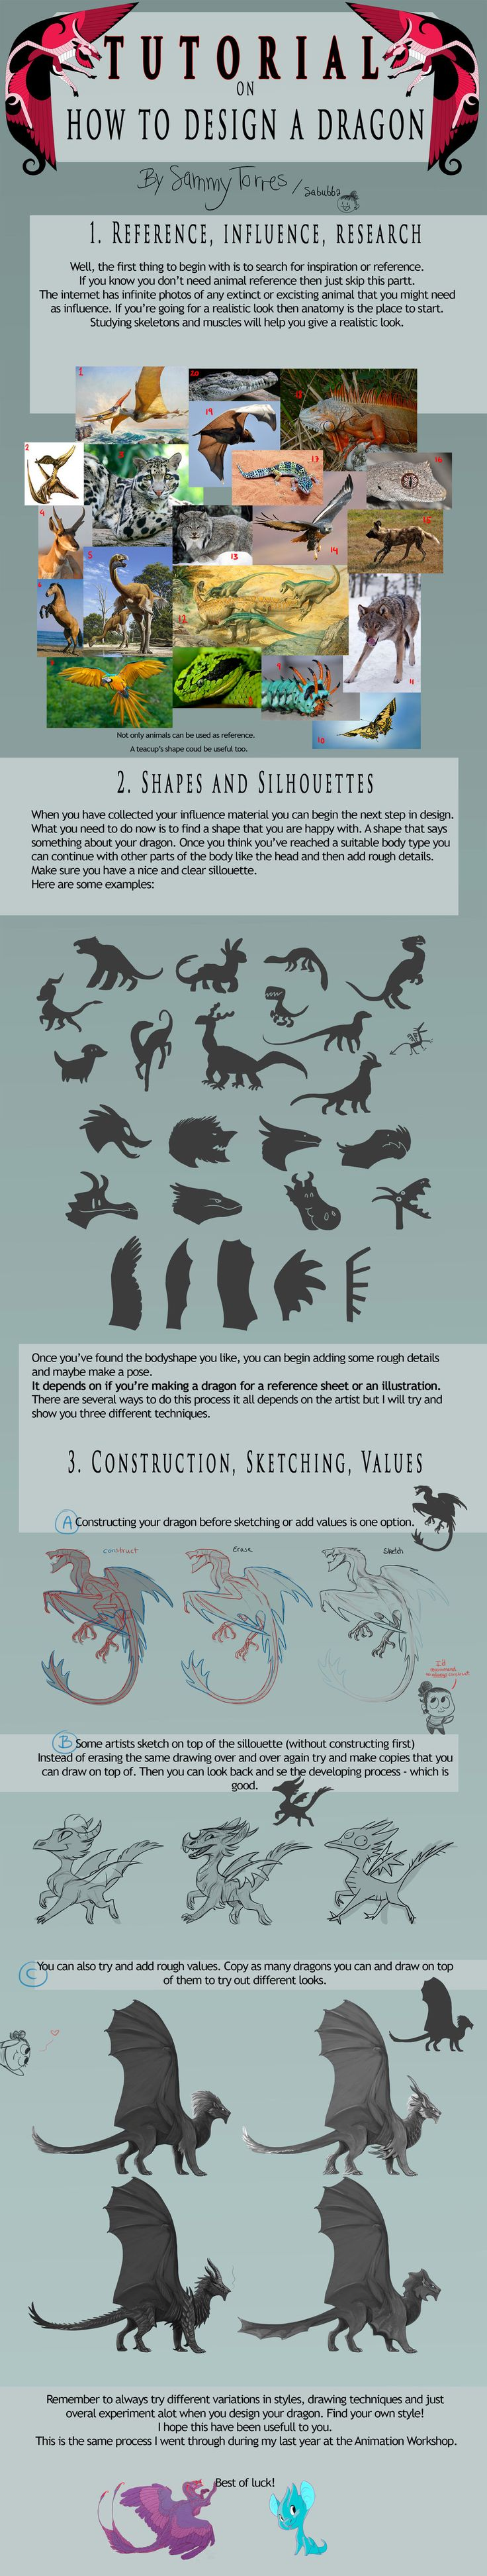 TUTORIAL: How to Design a Dragon by SammyTorres  — Fantasy character design